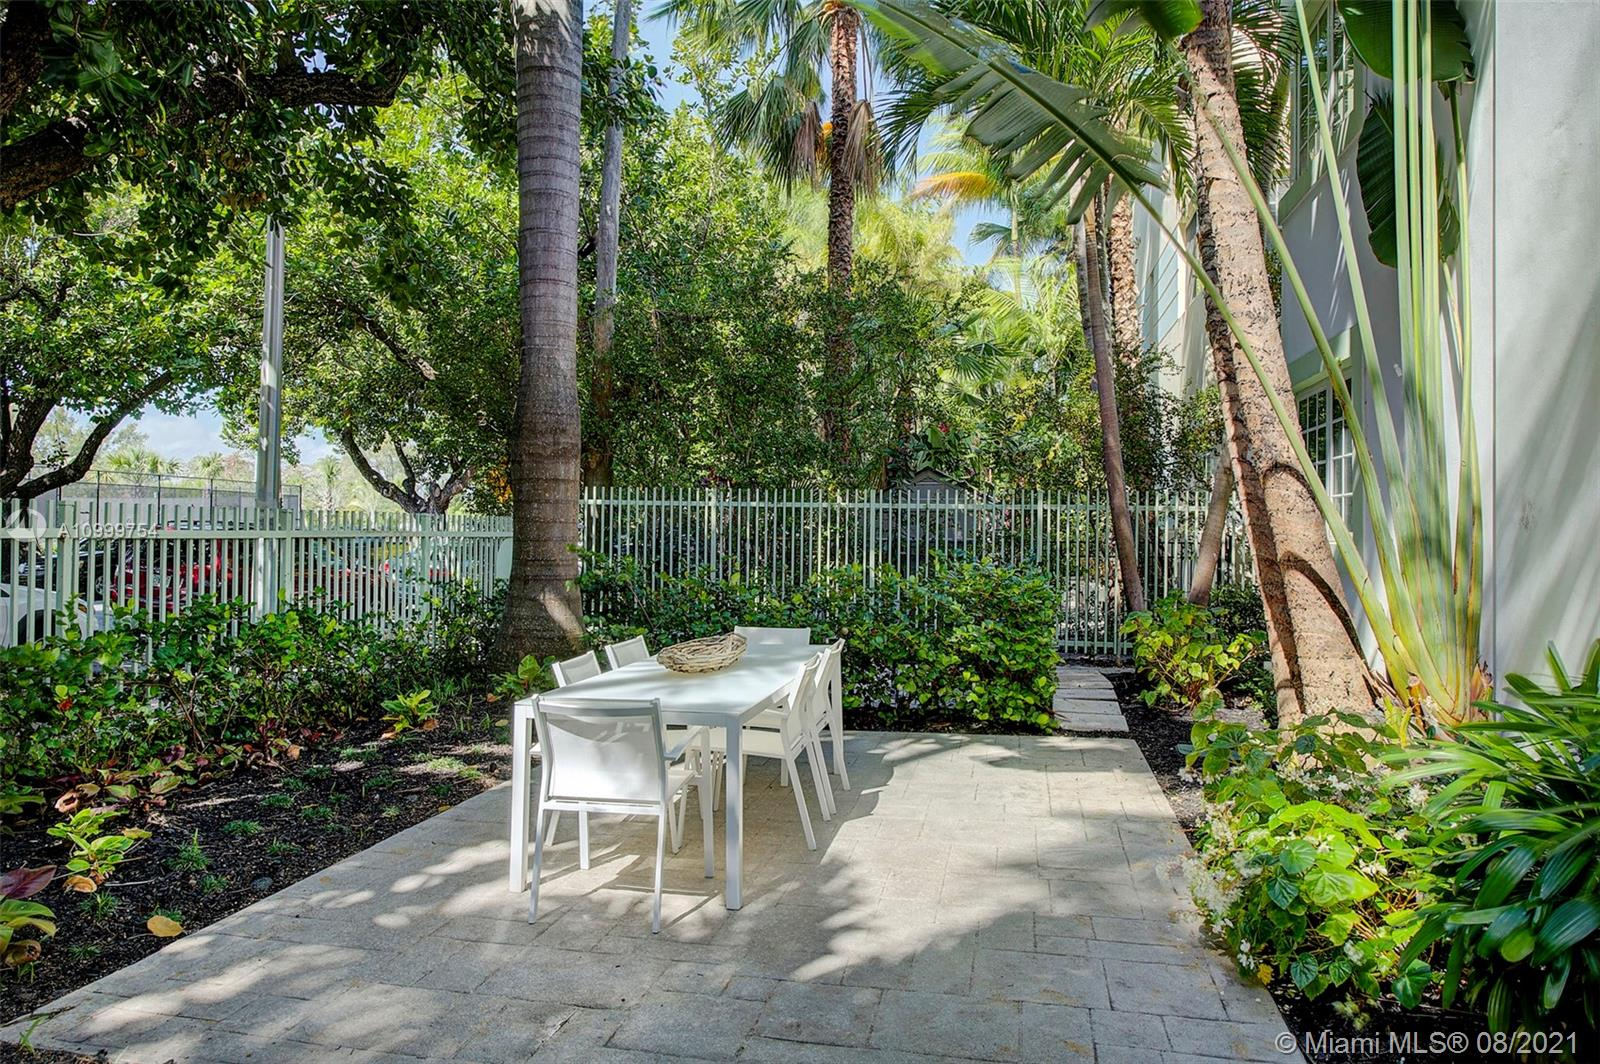 Turnkey unit, with central air, furnished and in the heart of South Beach. Quiet garden courtyard view. Impact windows, original wood floors, kitchen/bath renovation, new paint and fixtures.  Semi-private balcony overlooks the courtyard. The building is centrally located on quiet, historic, tree-lined avenue and one-way street, across from Flamingo Park. Walking distance to the ocean, supermarkets, dog park & Lincoln Road. Building has new roof, new plumbing and electrical, new paint and secured entrances. HOA Financials are healthy. No assessments. Parking is available with a residential decal that can be obtained through the city for a low yearly fee.